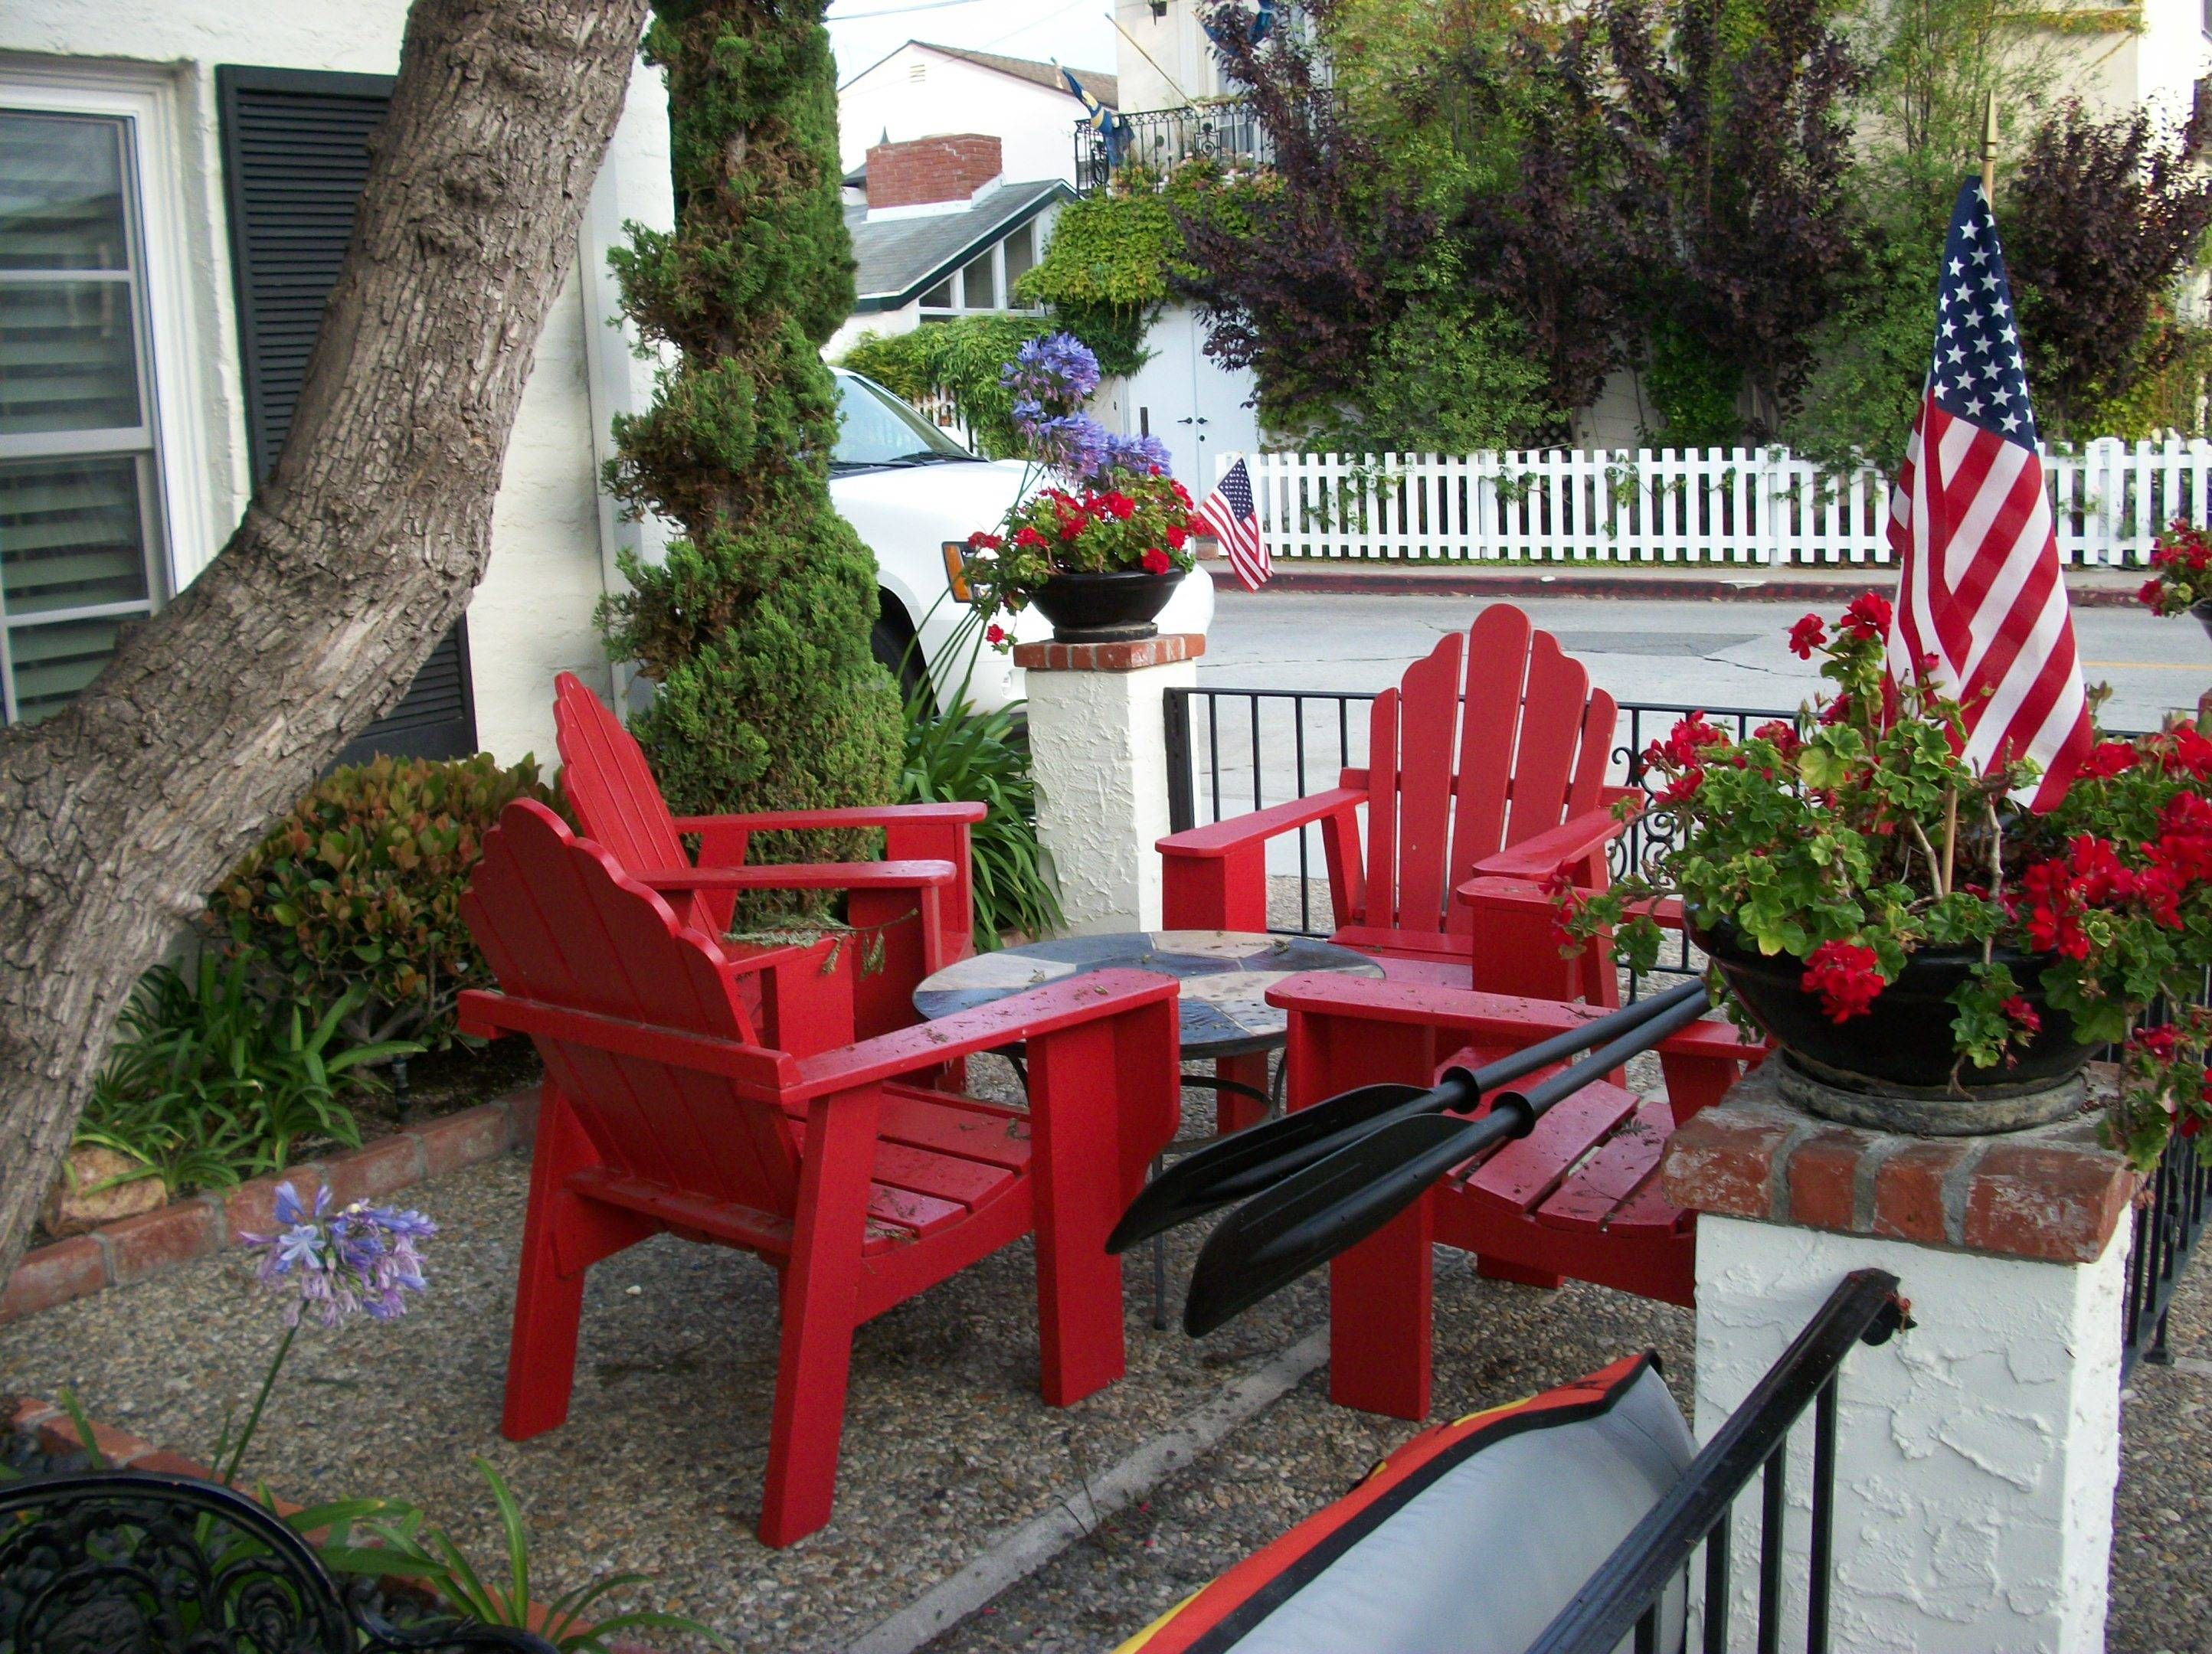 Love The Red Adirondack Chairs! Decorating Ideas For The Of July    Patriotic Porch, Patio And Deck Decorations   Patriotic Porches And Patios    Decorating ...